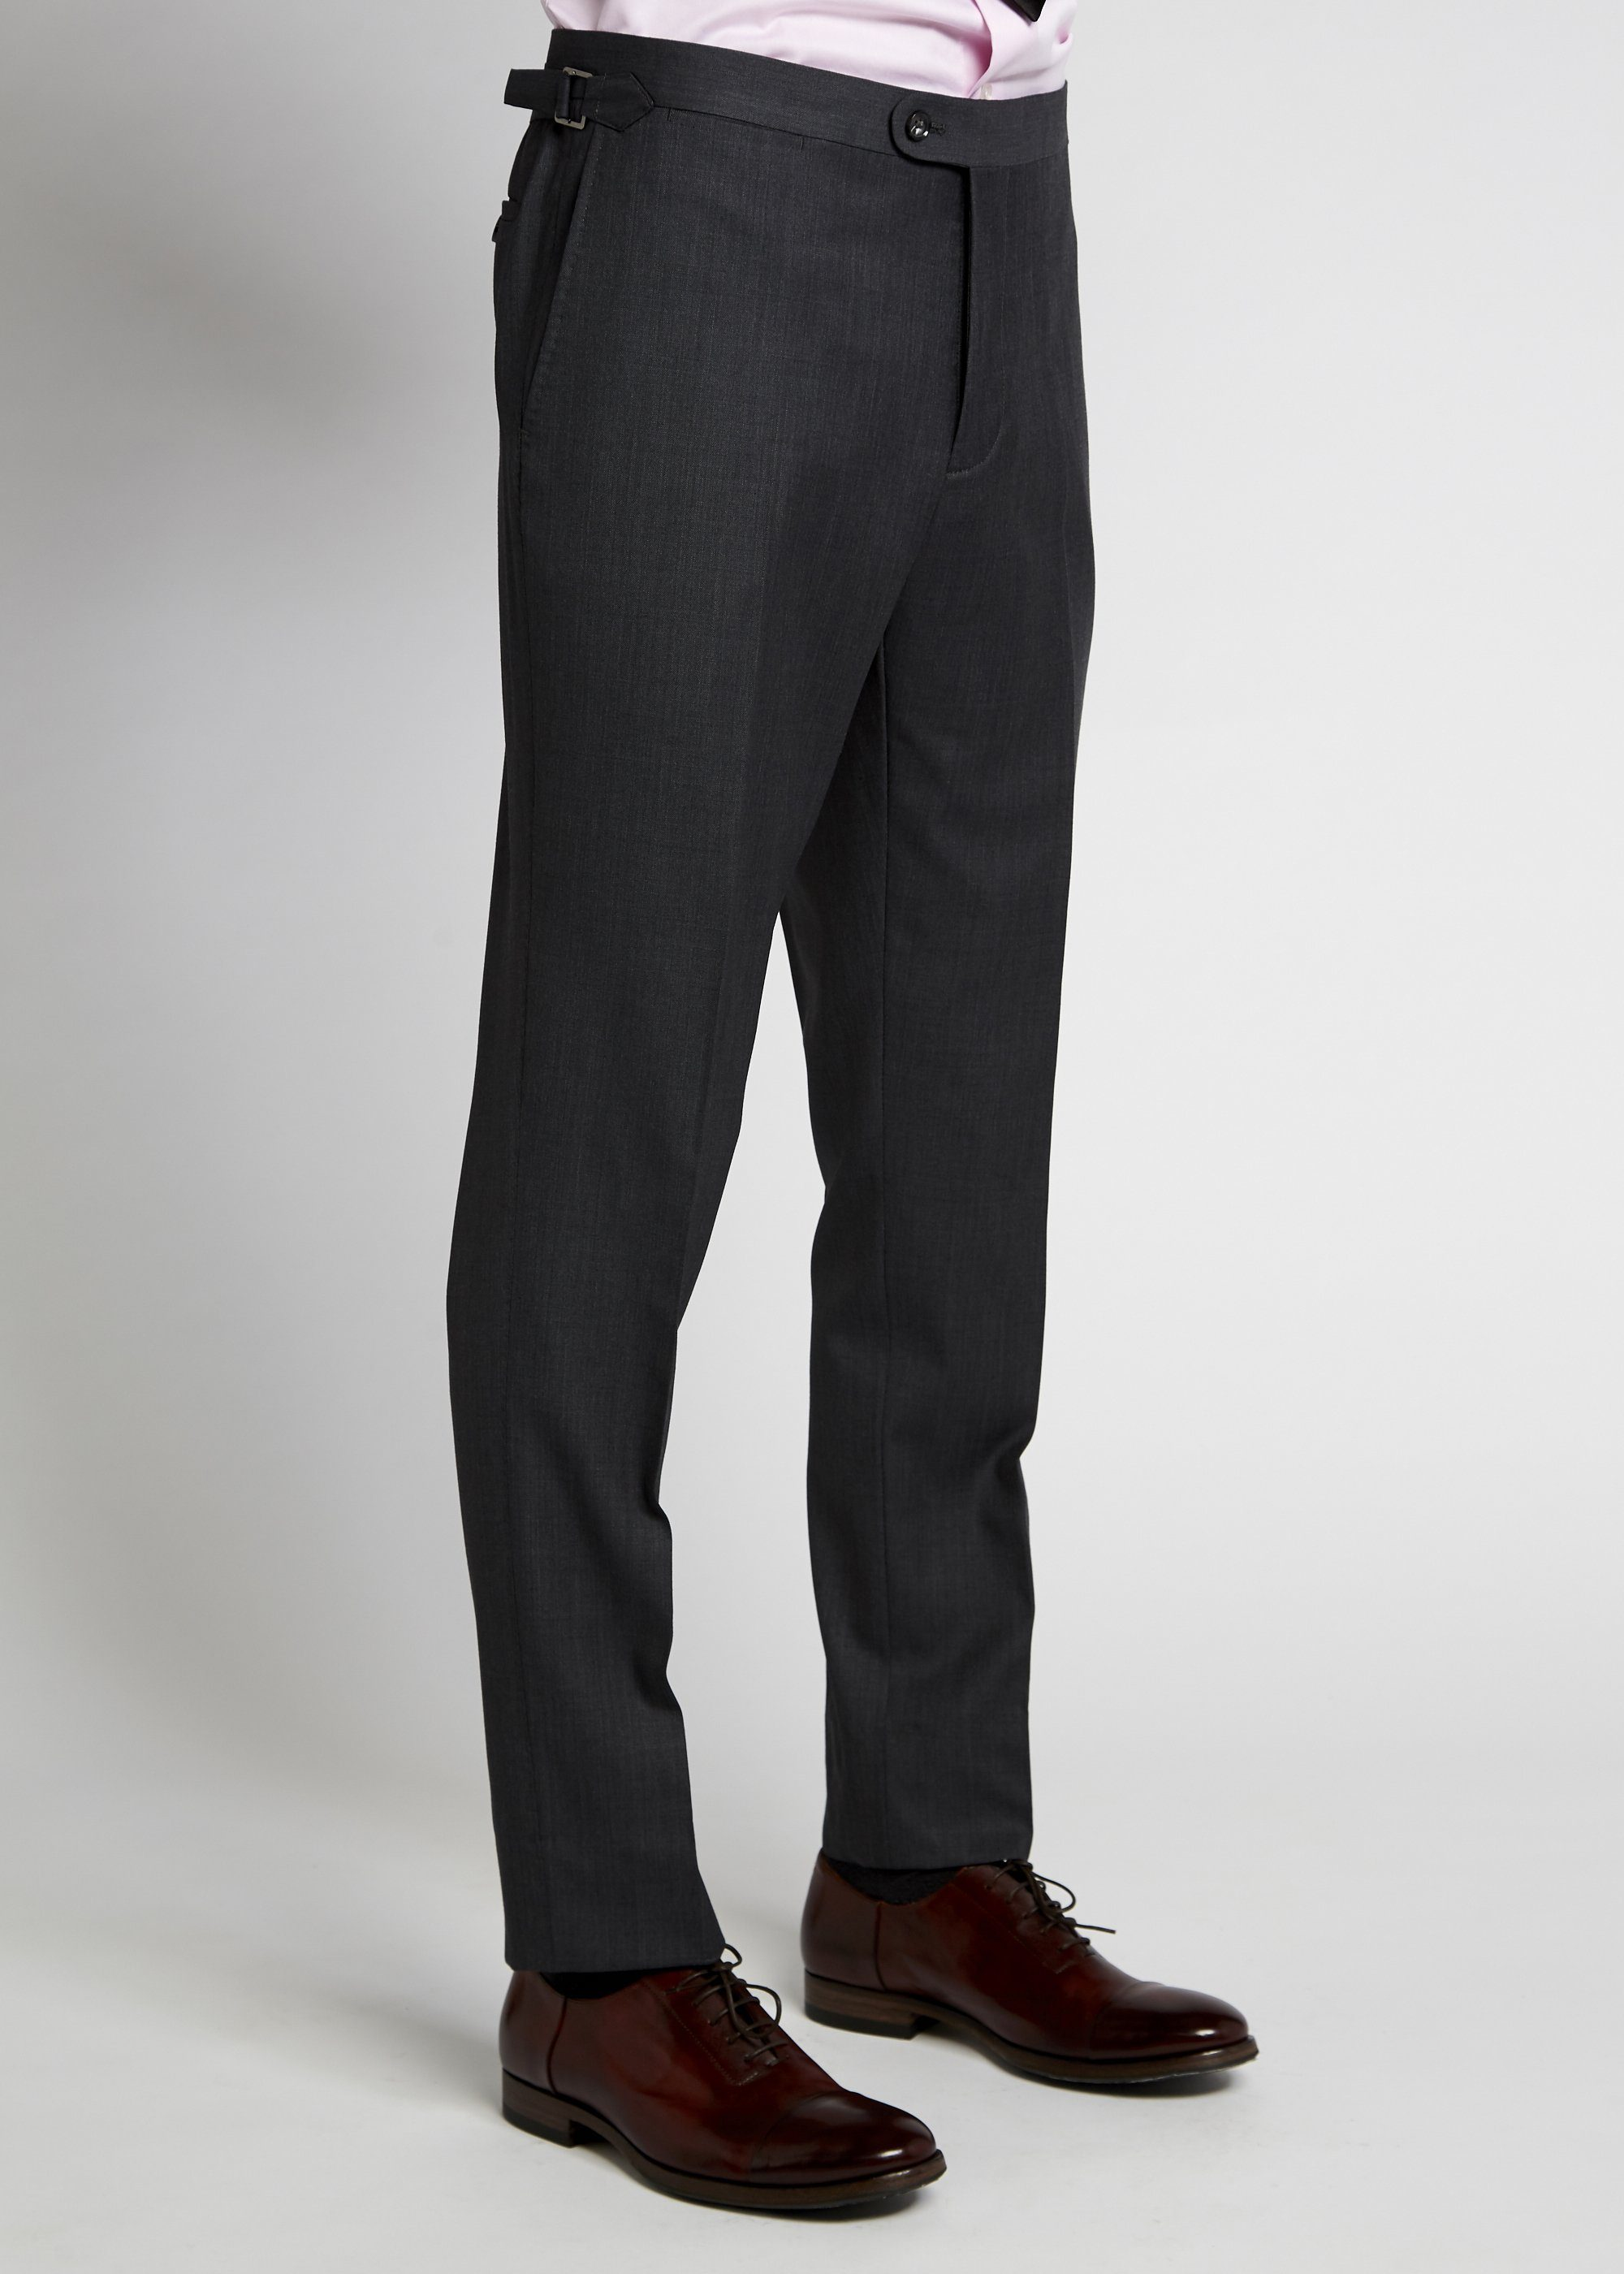 Apollo Trouser - Charcoal